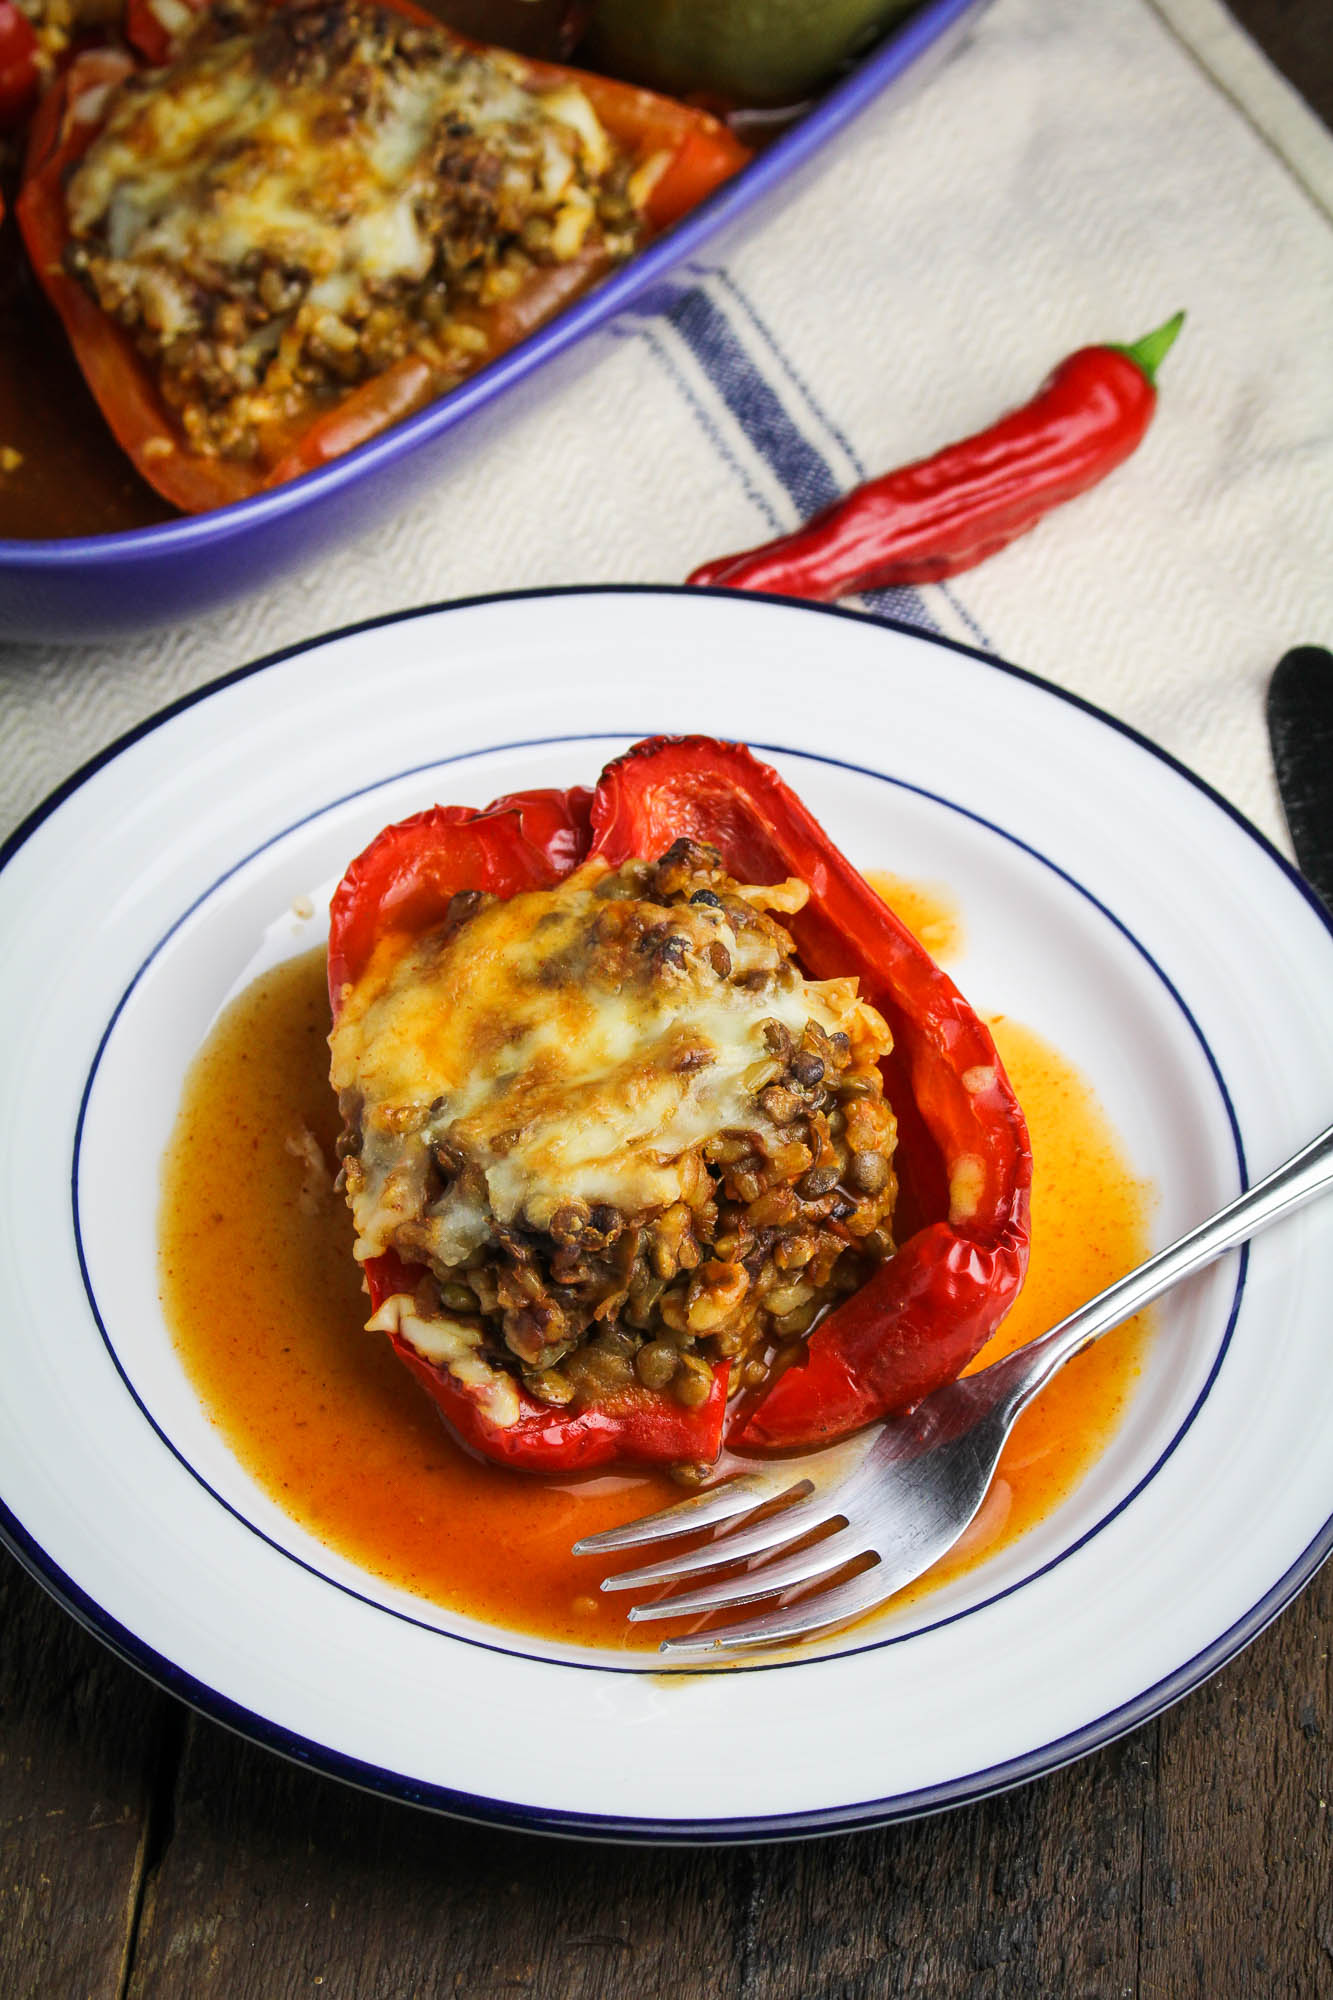 Old El Paso Back-to-School // Enchilada-Style Vegetarian Stuffed Peppers